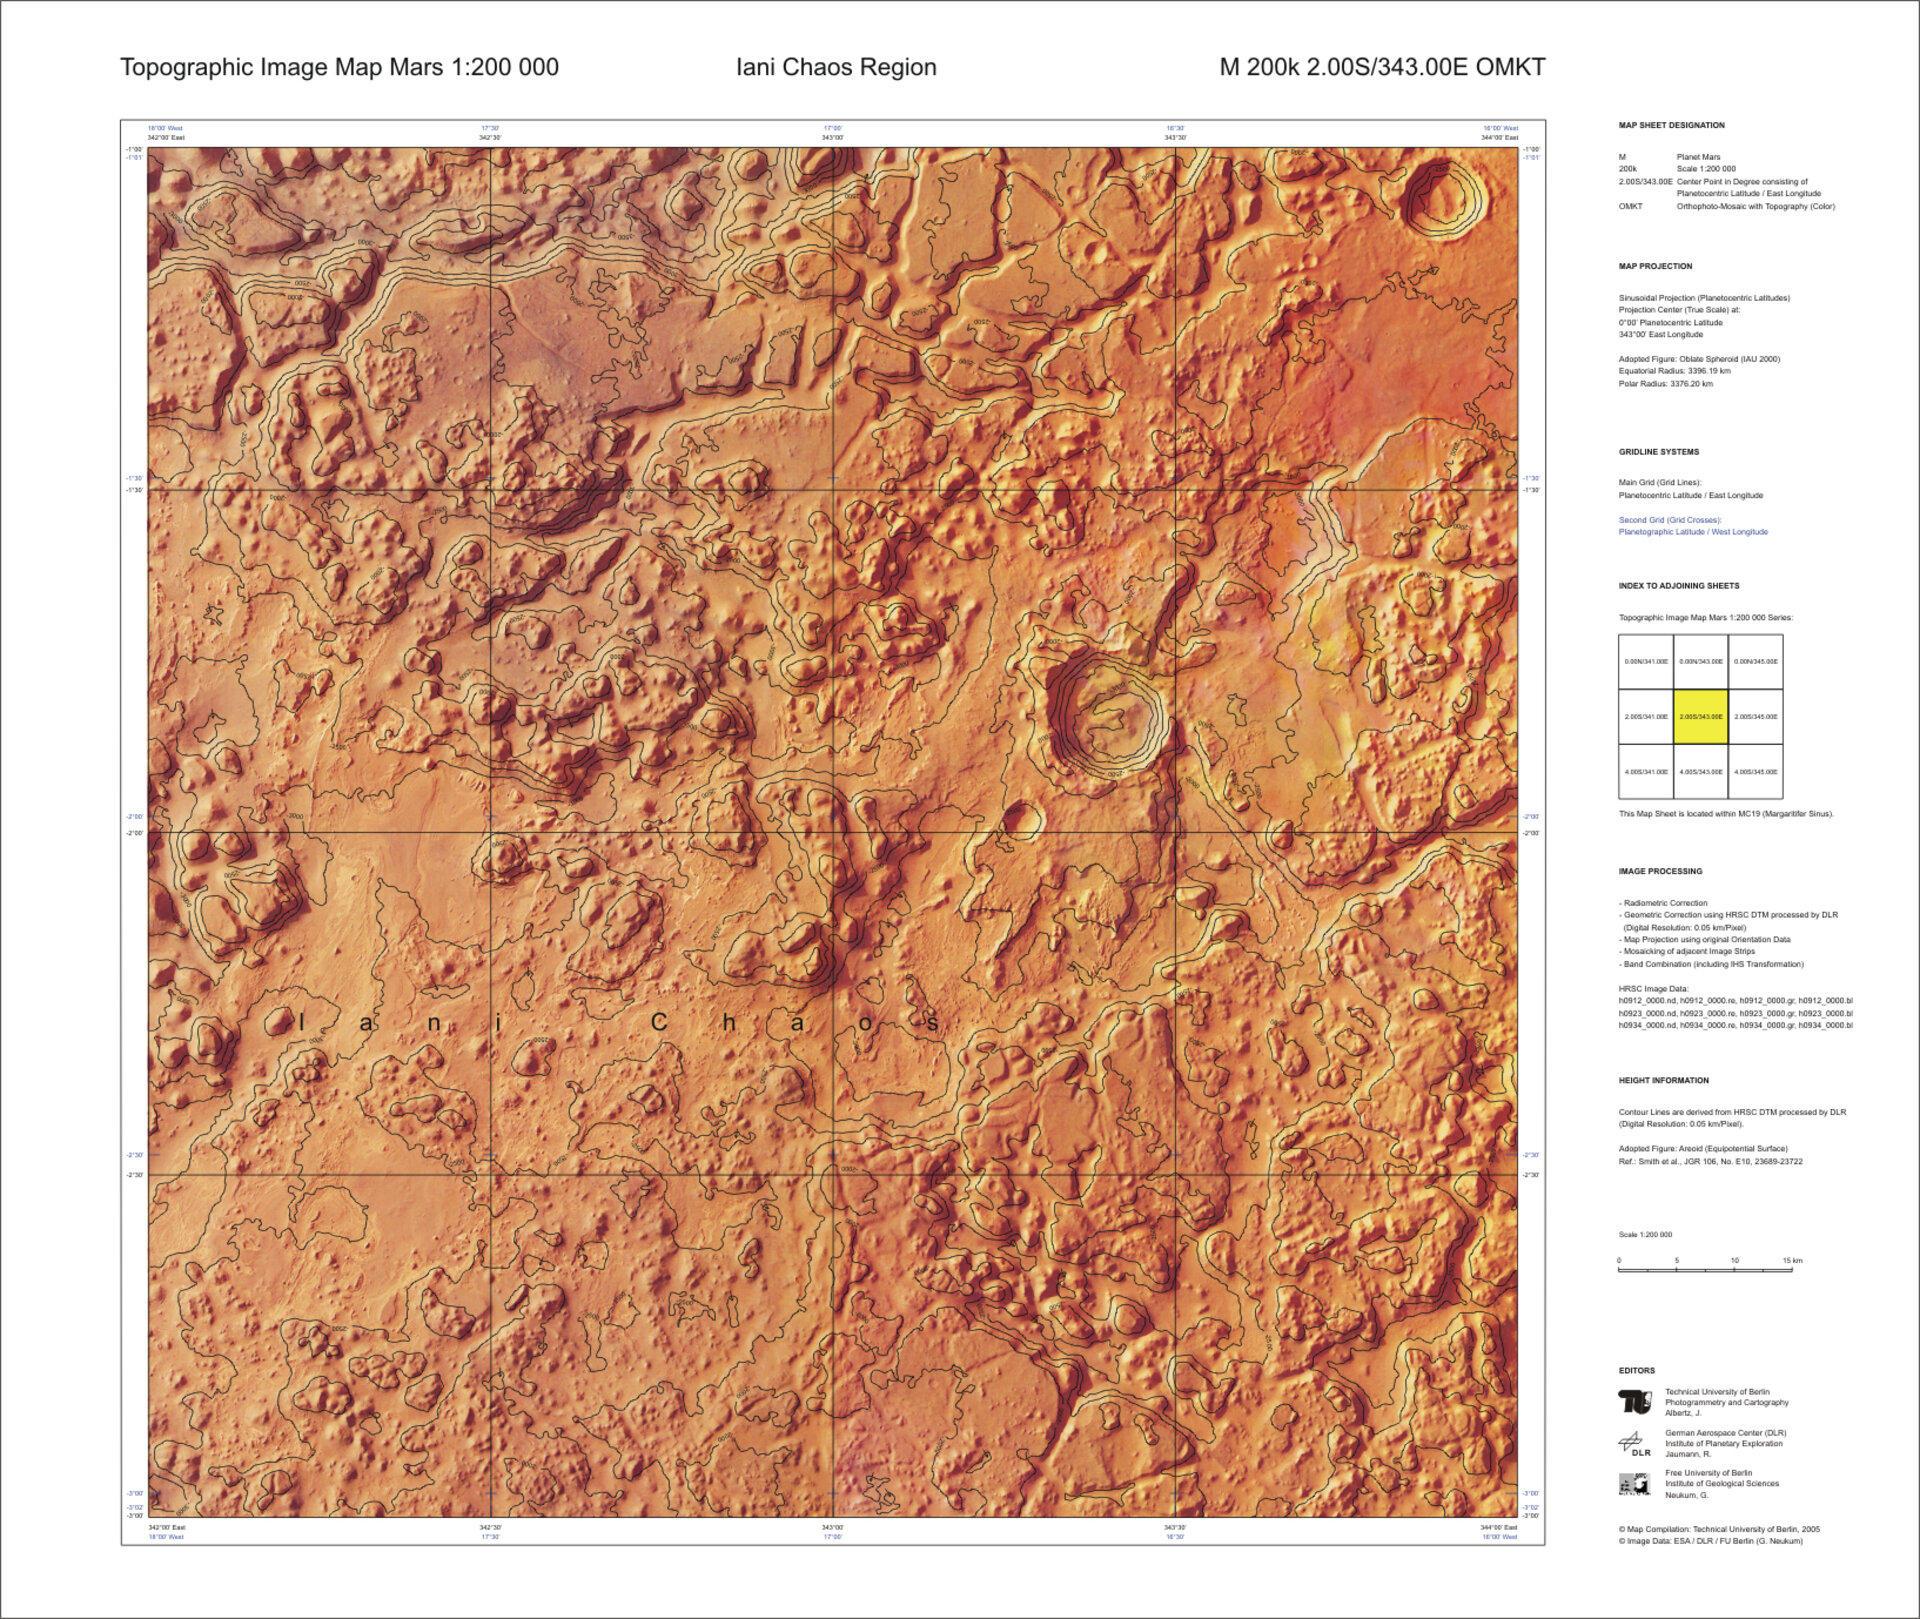 Another topographic map of Mars at 1:200 000